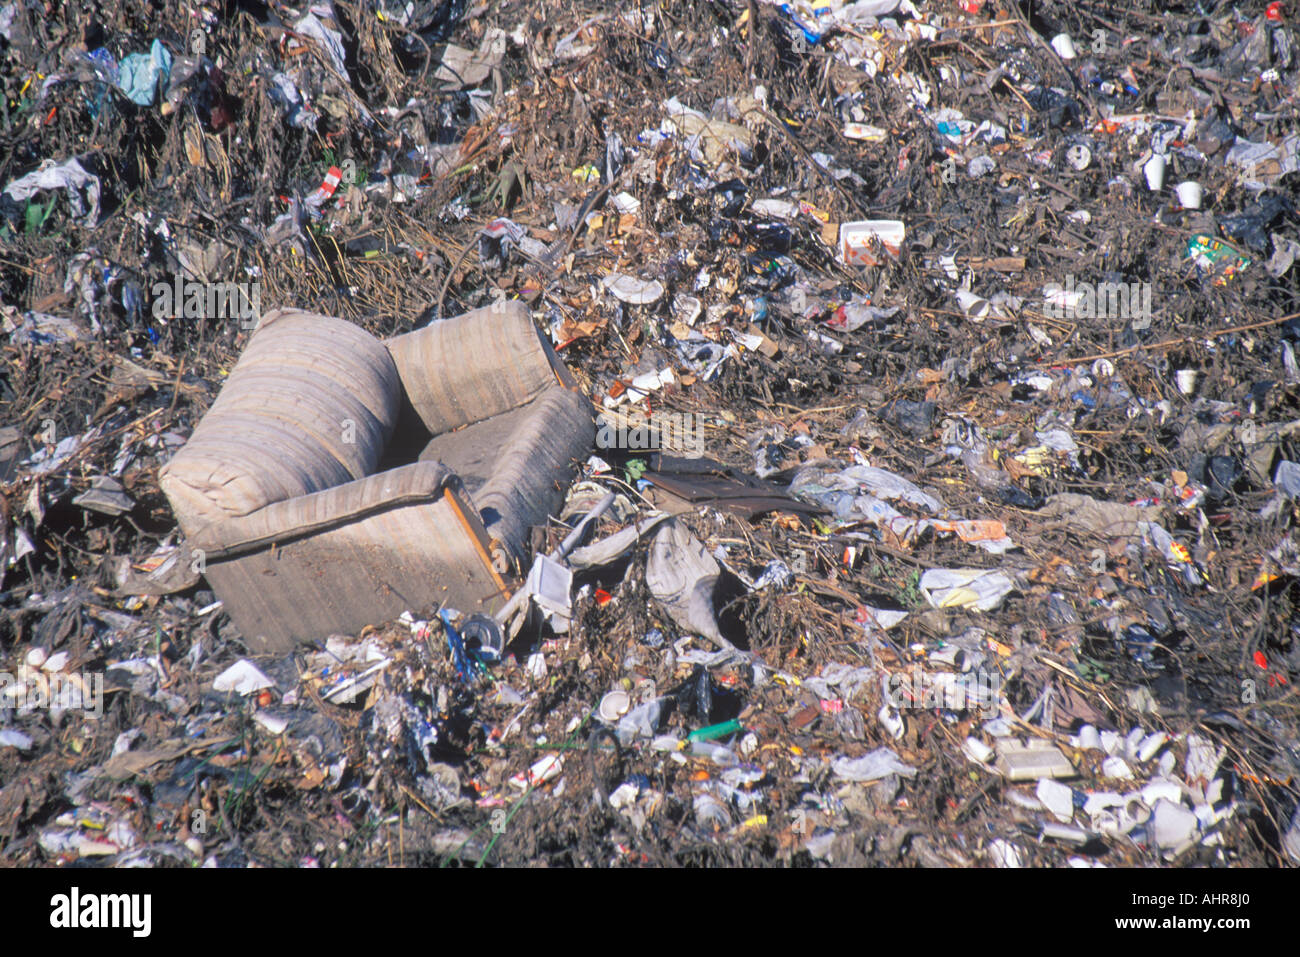 A Couch In The Middle Of An Undesignated Dump In Compton California